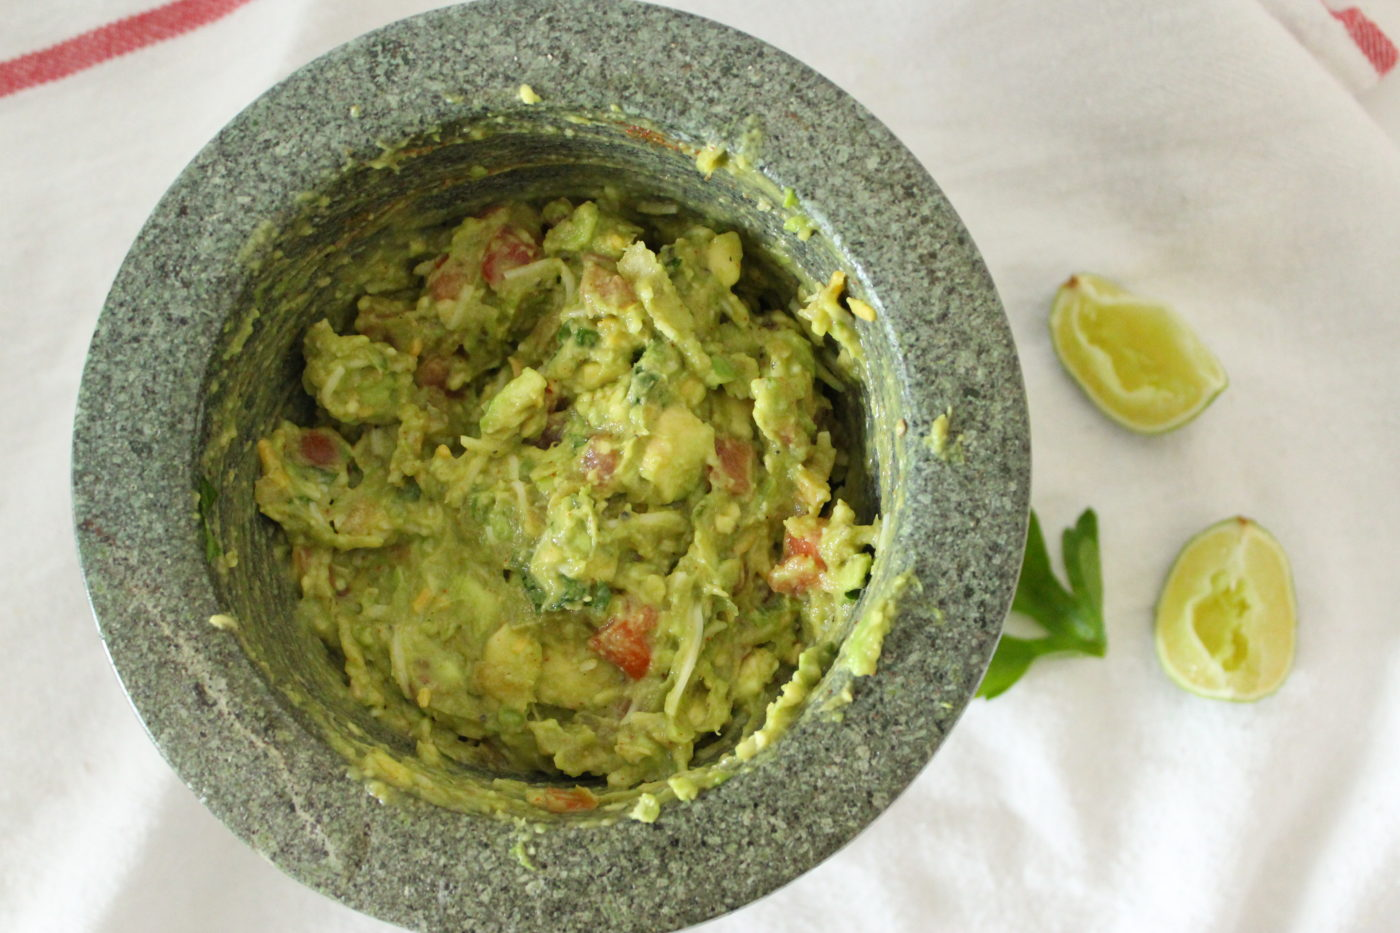 Guacamole hasn't been on my top foods to eat but I'm giving it a try by creating my own easy recipe.